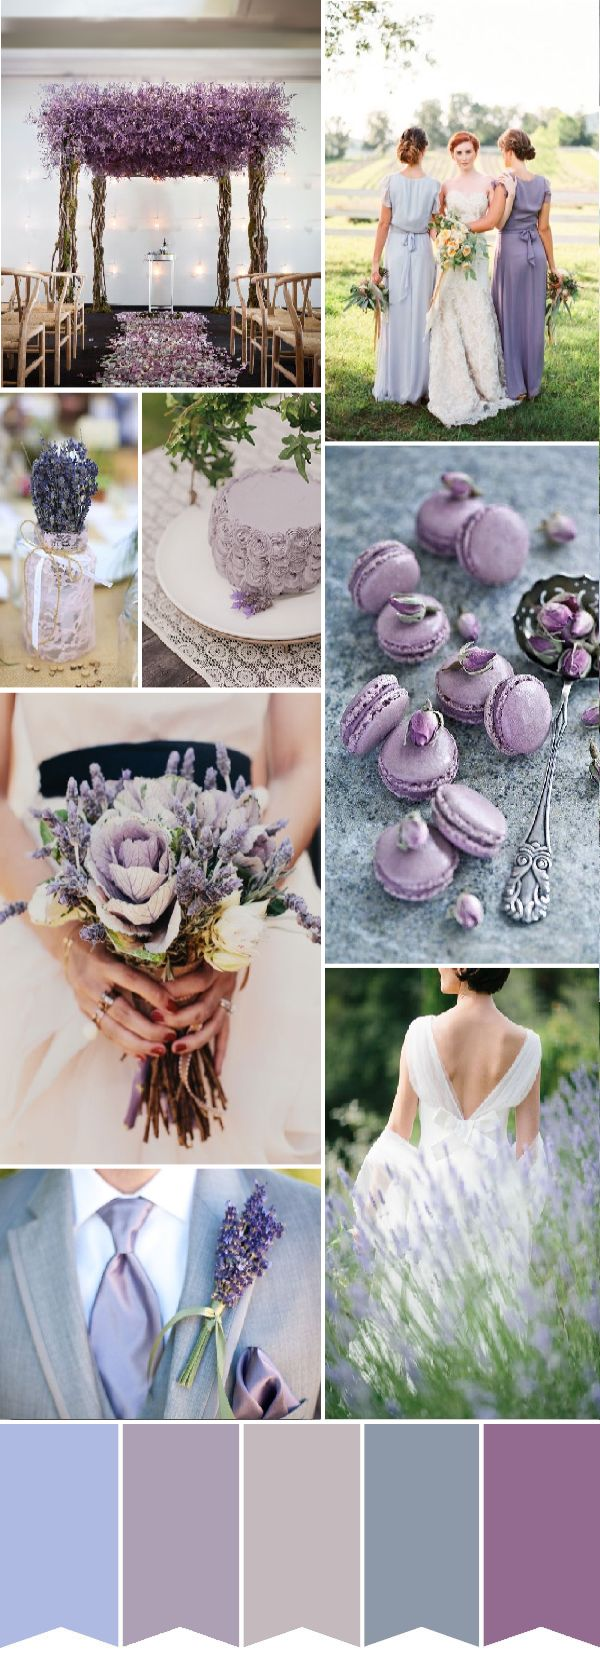 lavender wedding color palette OMG! I LOVE IT ALL. NEED TO PAINT MATCH THE COLOR FEELING